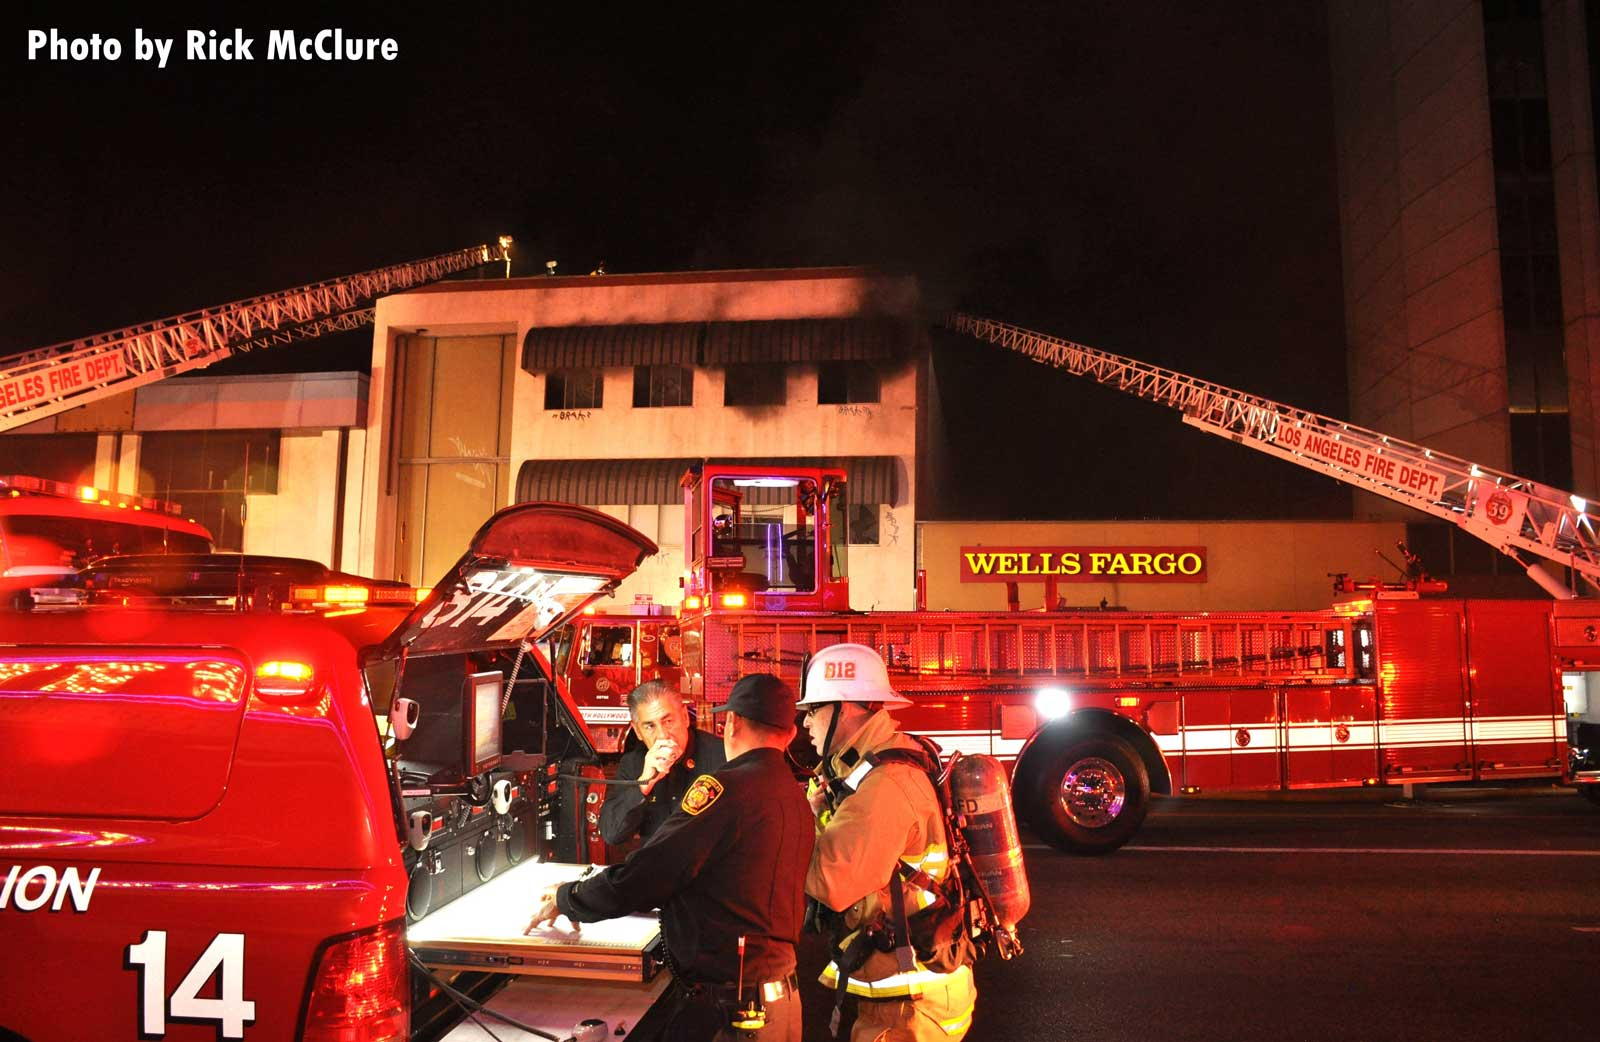 LAFD firefighters and apparatus on scene at large commercial fire